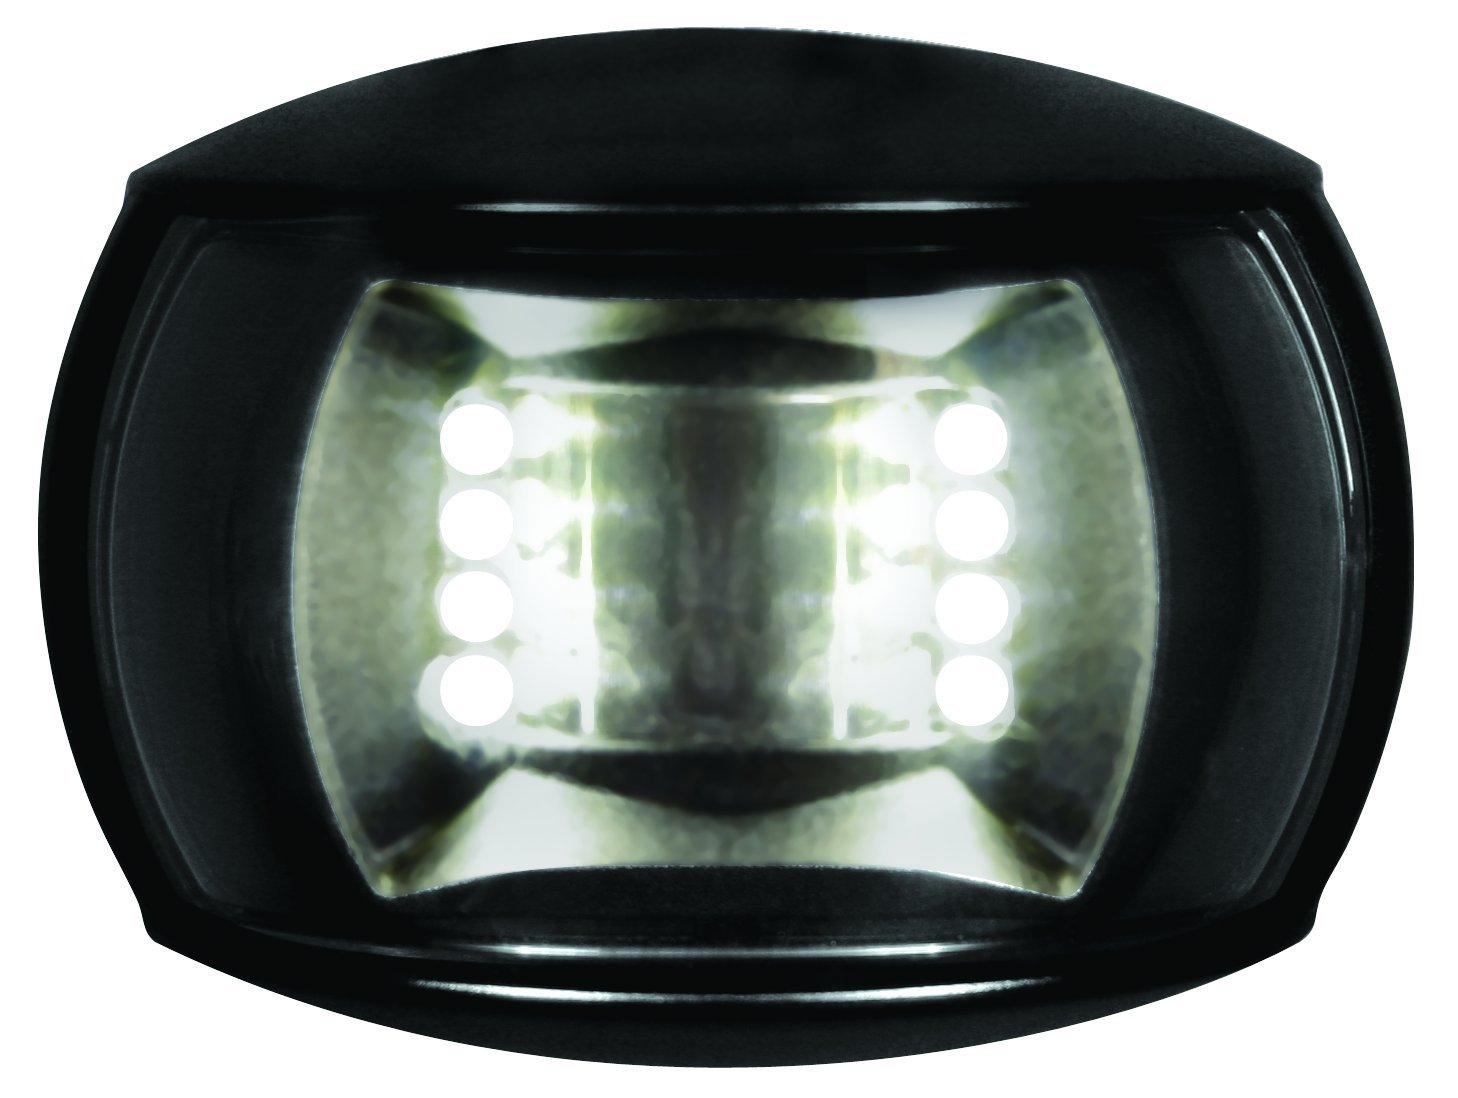 HELLA 980520501 '0520 Series' NaviLED Multivolt White 8-28V DC 2 NM Compact Stern Navigation Light with Clear Lens and Black Shroud by HELLA